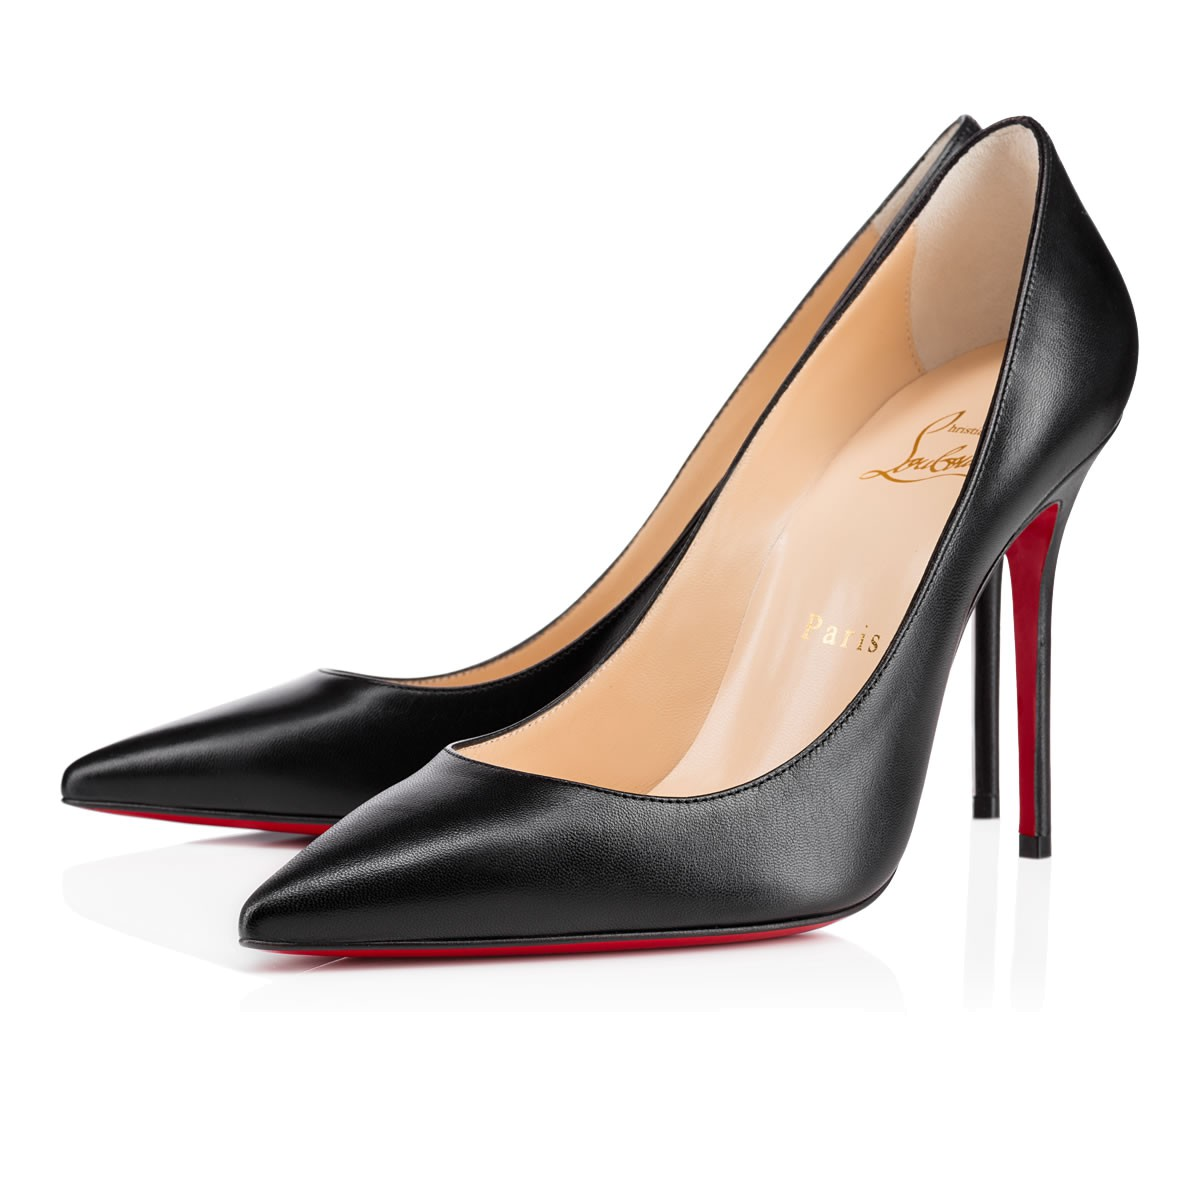 fc499e674922fc ... and superfine stiletto heel. Whether you re dashing off to a daytime  meeting or an evening date